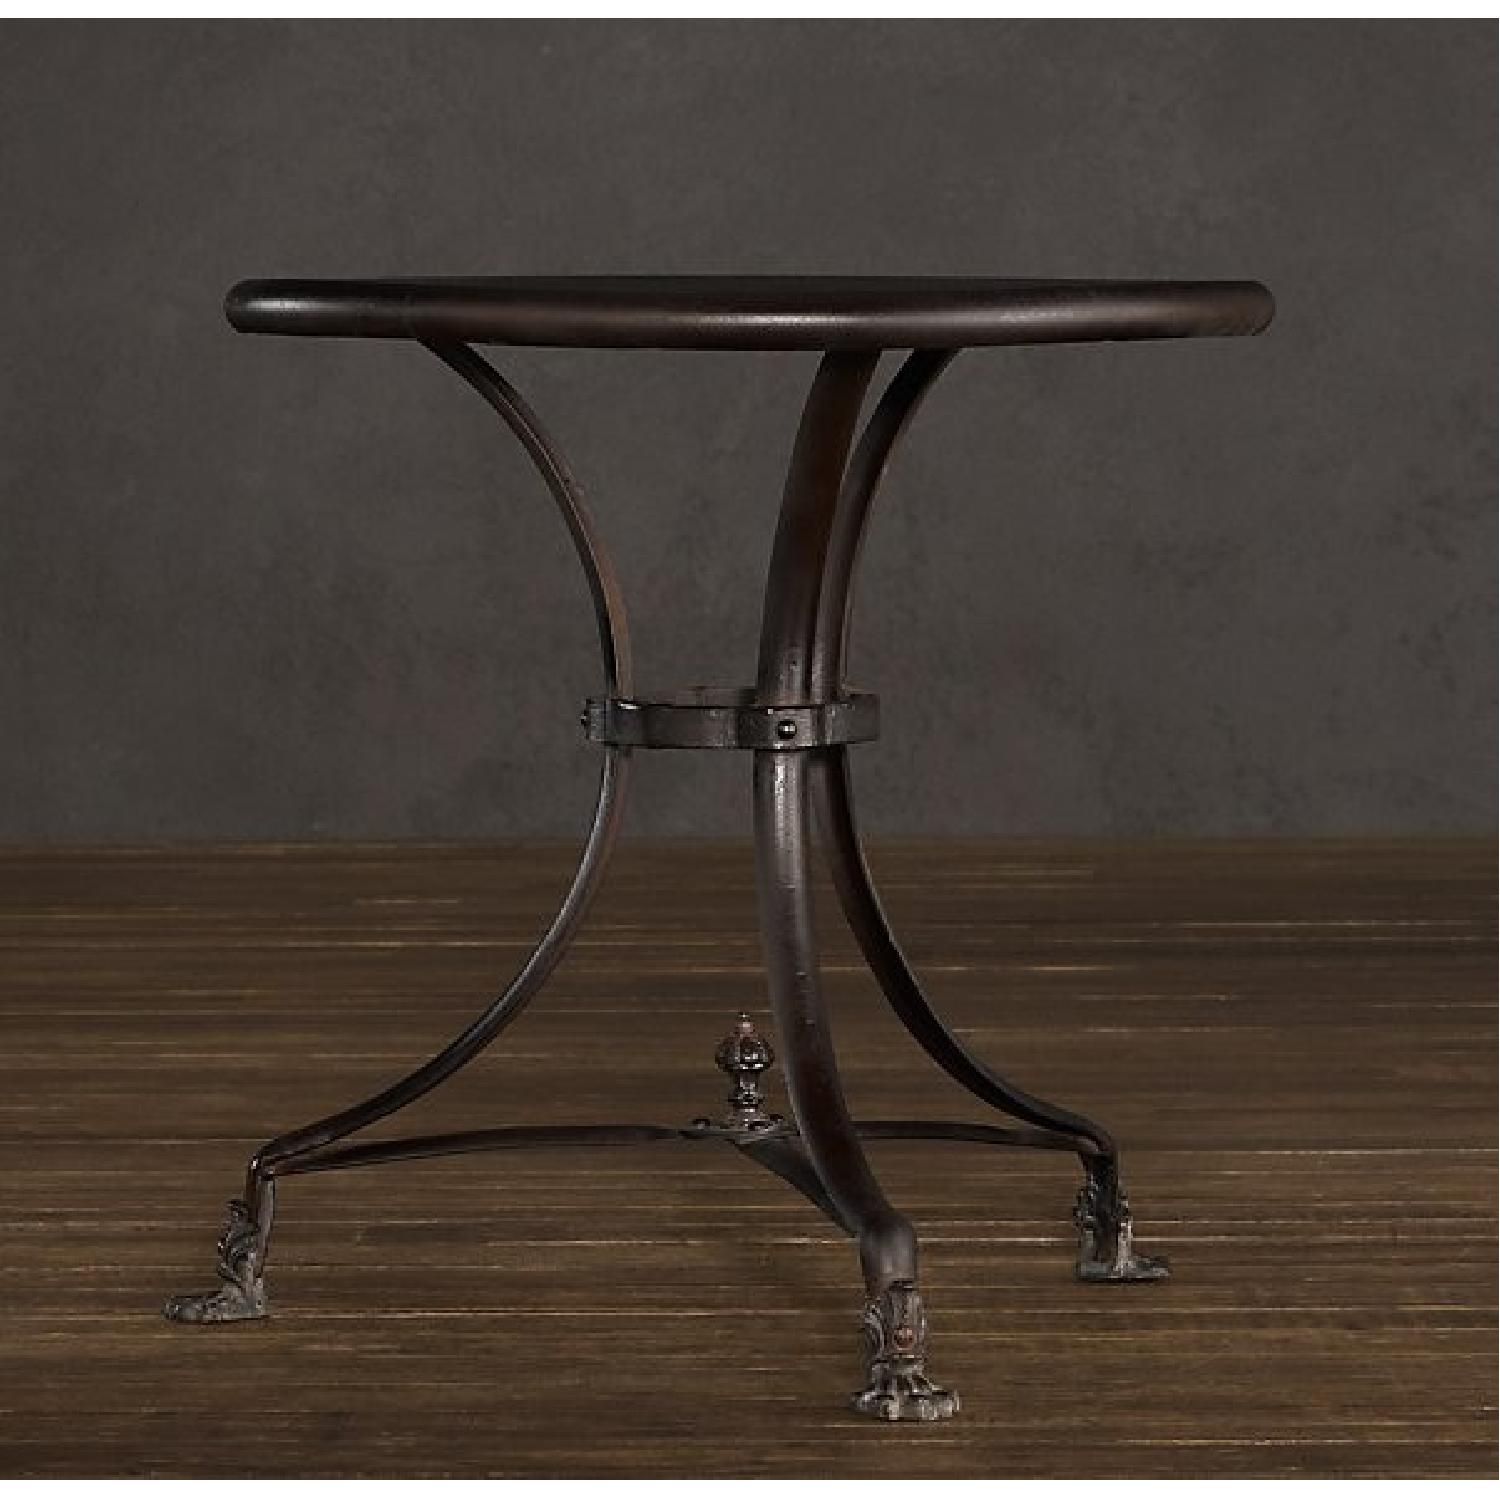 Restoration Hardware 19th C. French Lion's Foot Brasserie Table w/ 2 Chairs - image-2